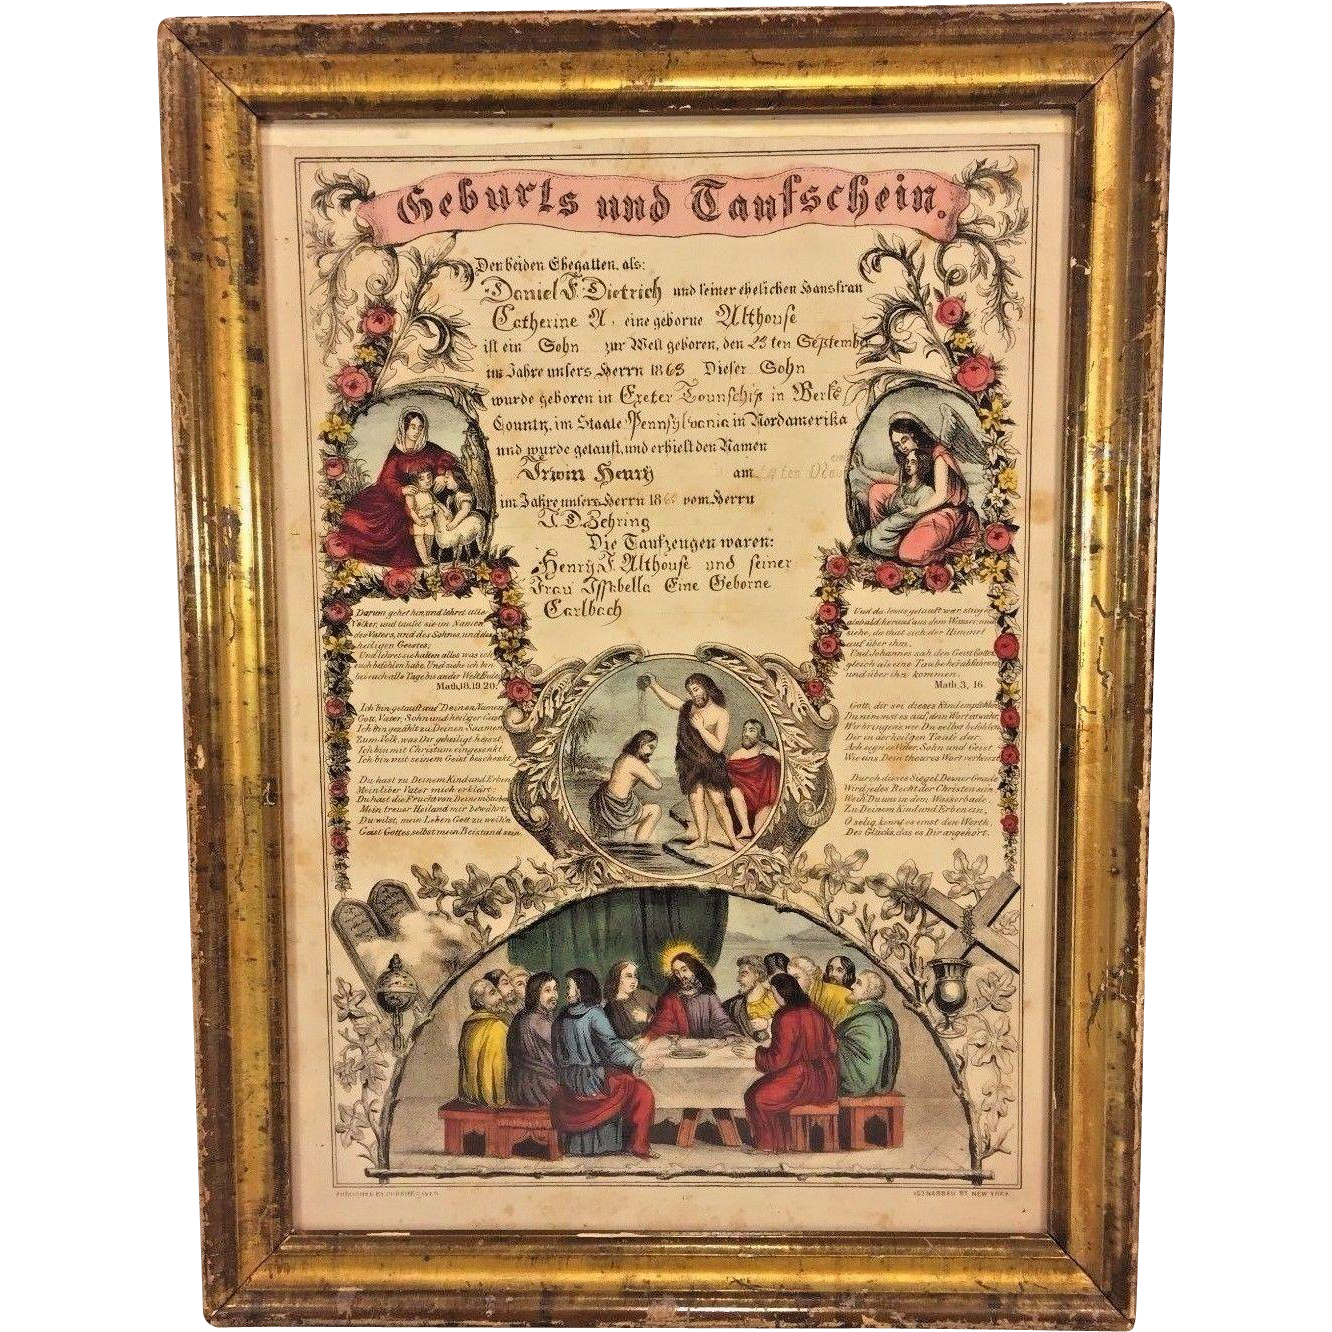 Antique printed birth baptism certificate john dietrich 1863 antique printed birth baptism certificate john dietrich 1863 berks county pa in frame currier ives print aiddatafo Images